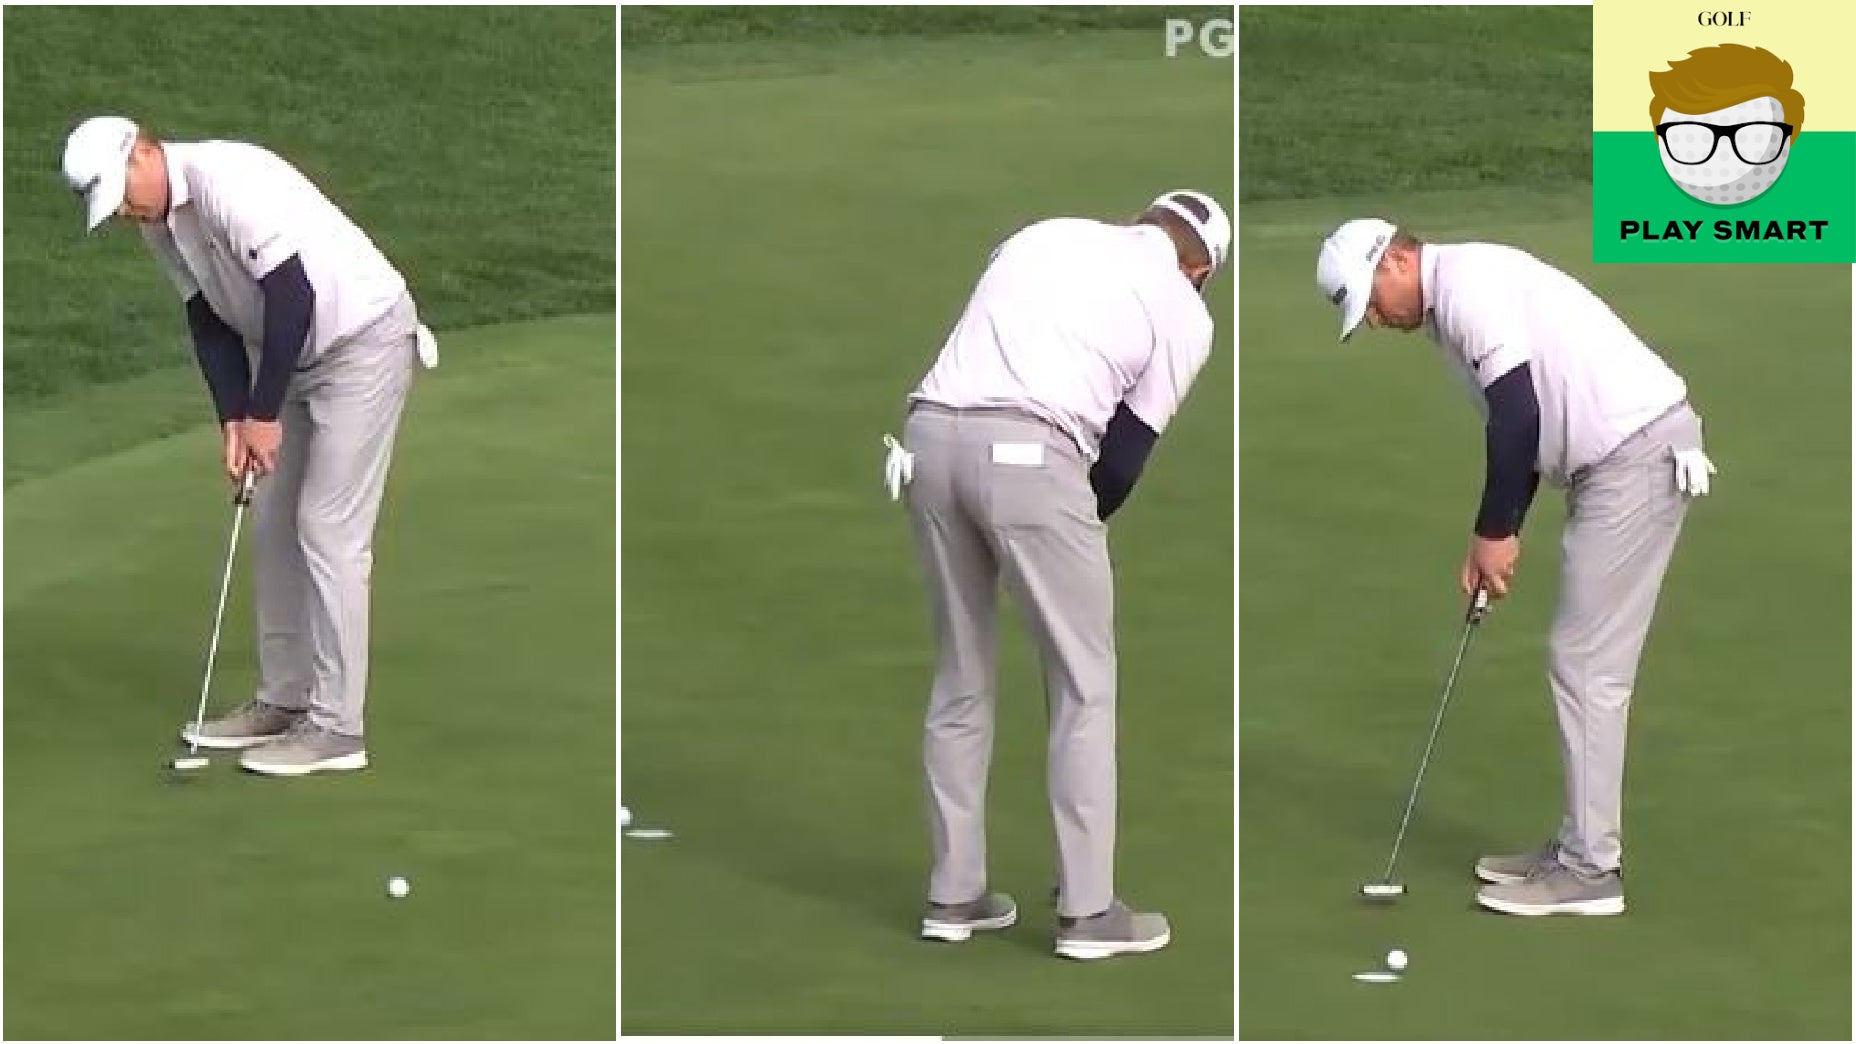 These were the 3 mistakes Nate Lashley made during his four-putt meltdown